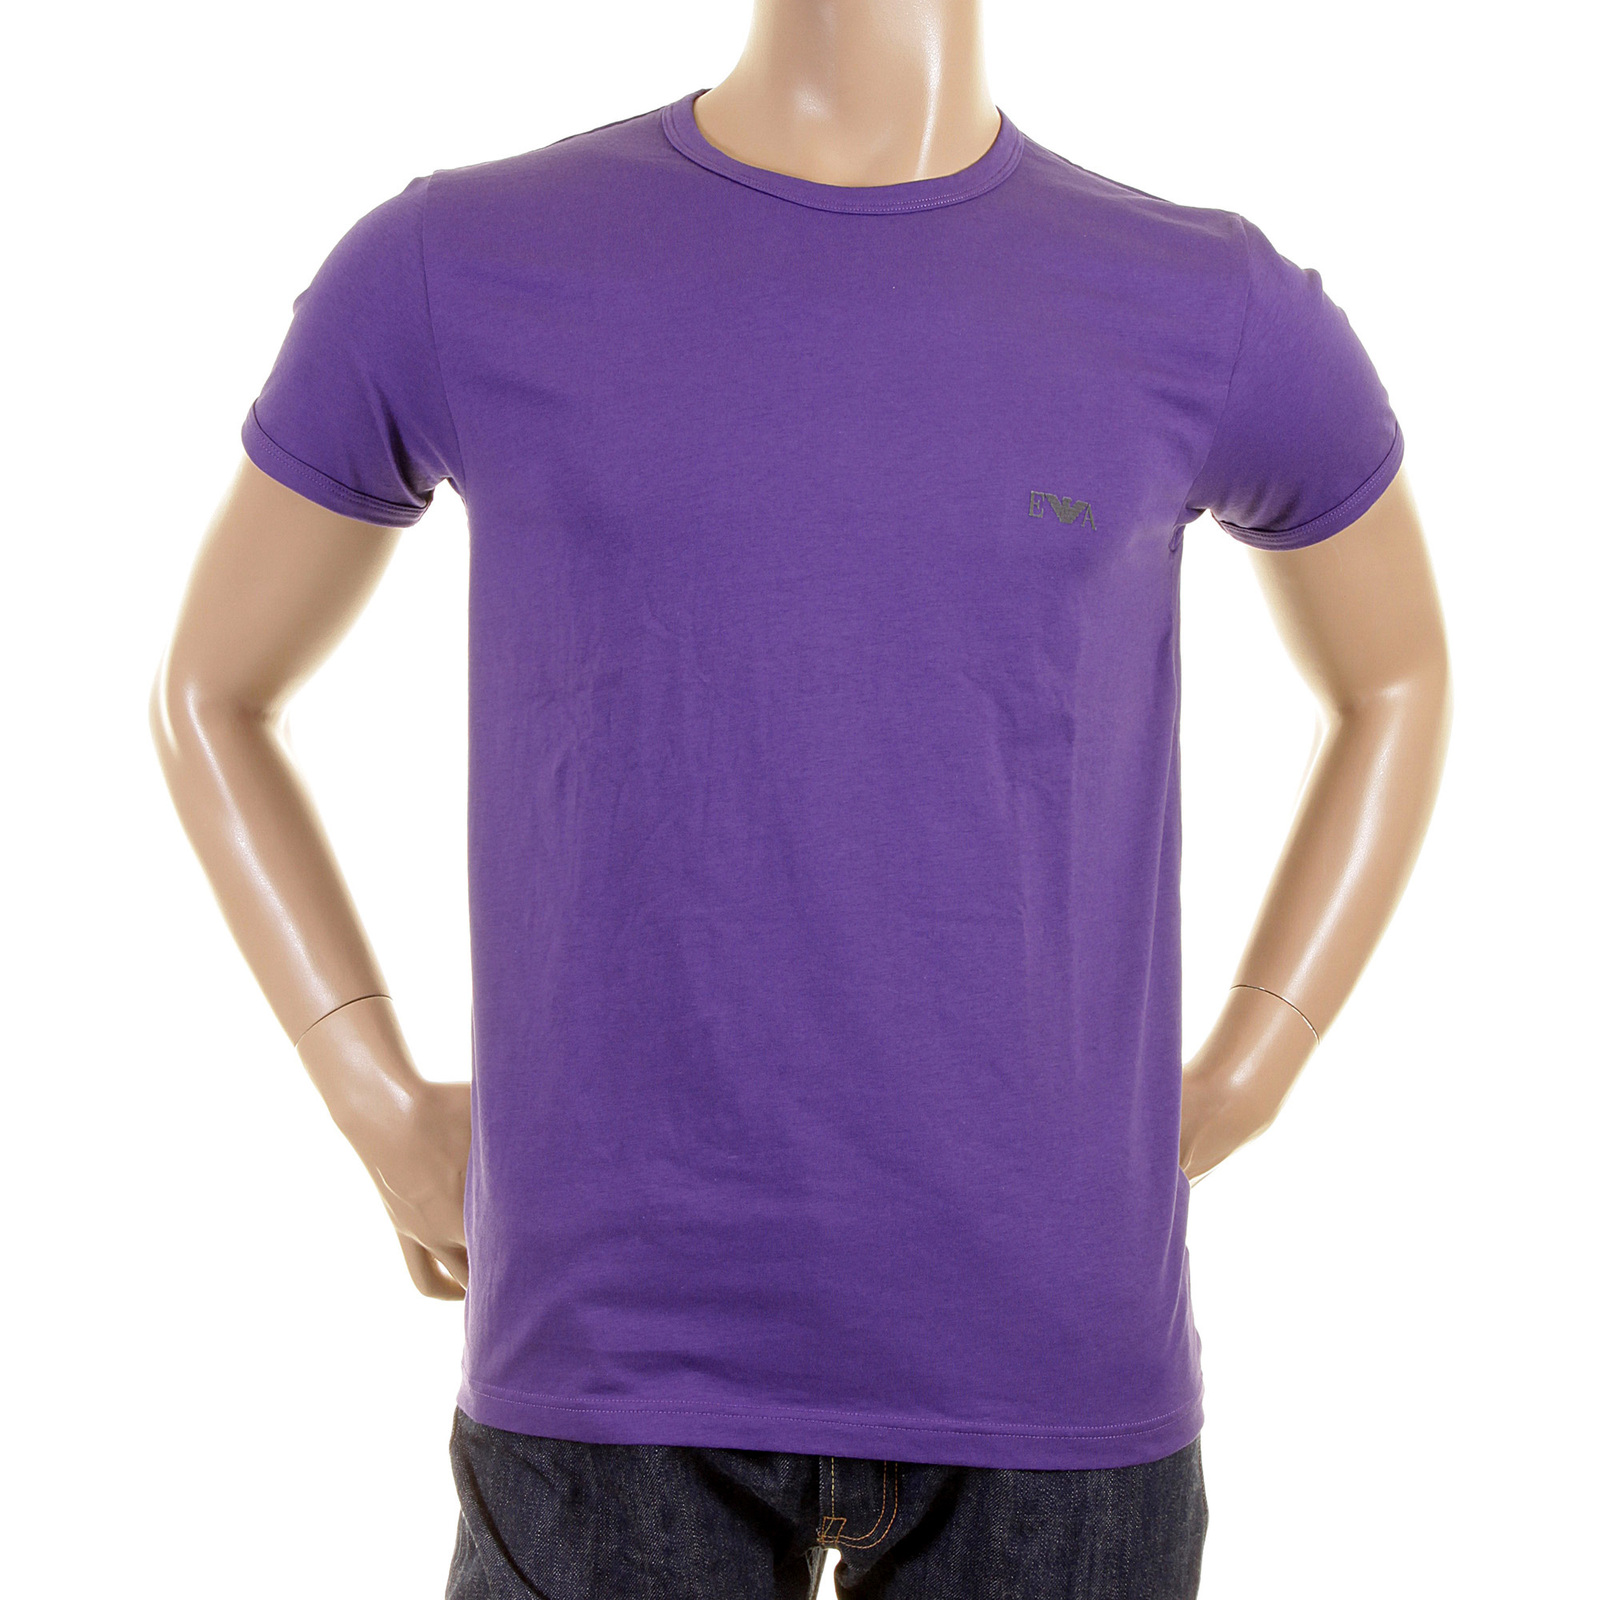 emporio armani t shirts violet crew neck t shirt 110853 2p540 eam0317 at togged clothing. Black Bedroom Furniture Sets. Home Design Ideas